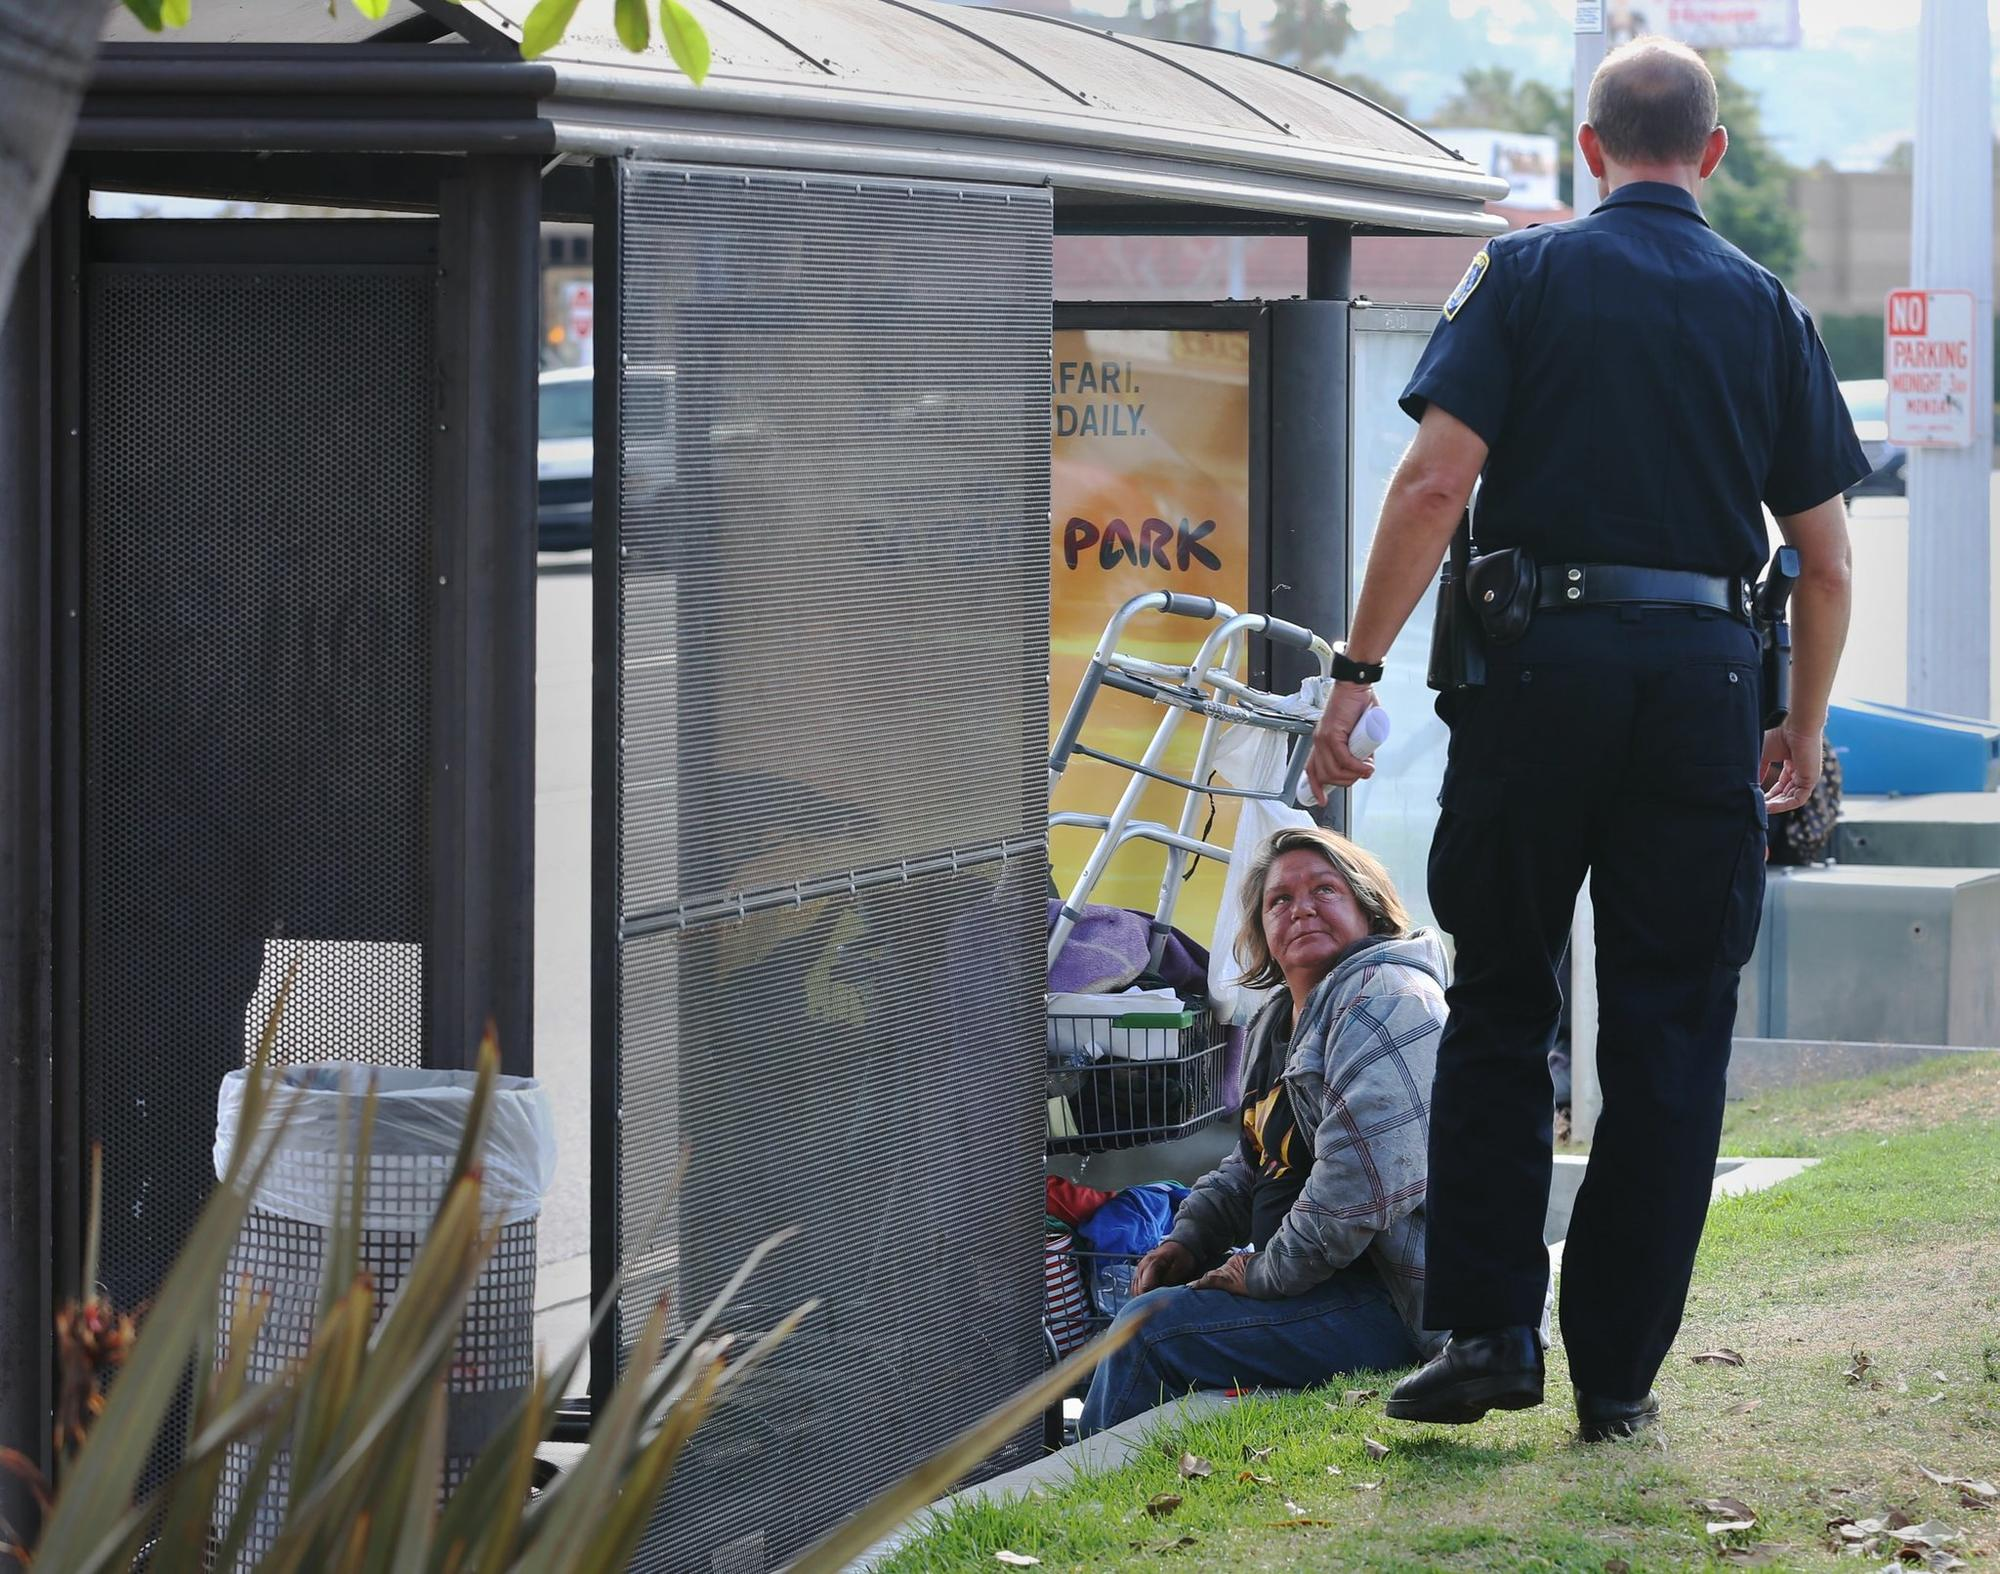 San Diego police Officer Brian Lucchesi, who works in homeless outreach, talks with a homeless woman in the Midway area about the assaults on homeless men.